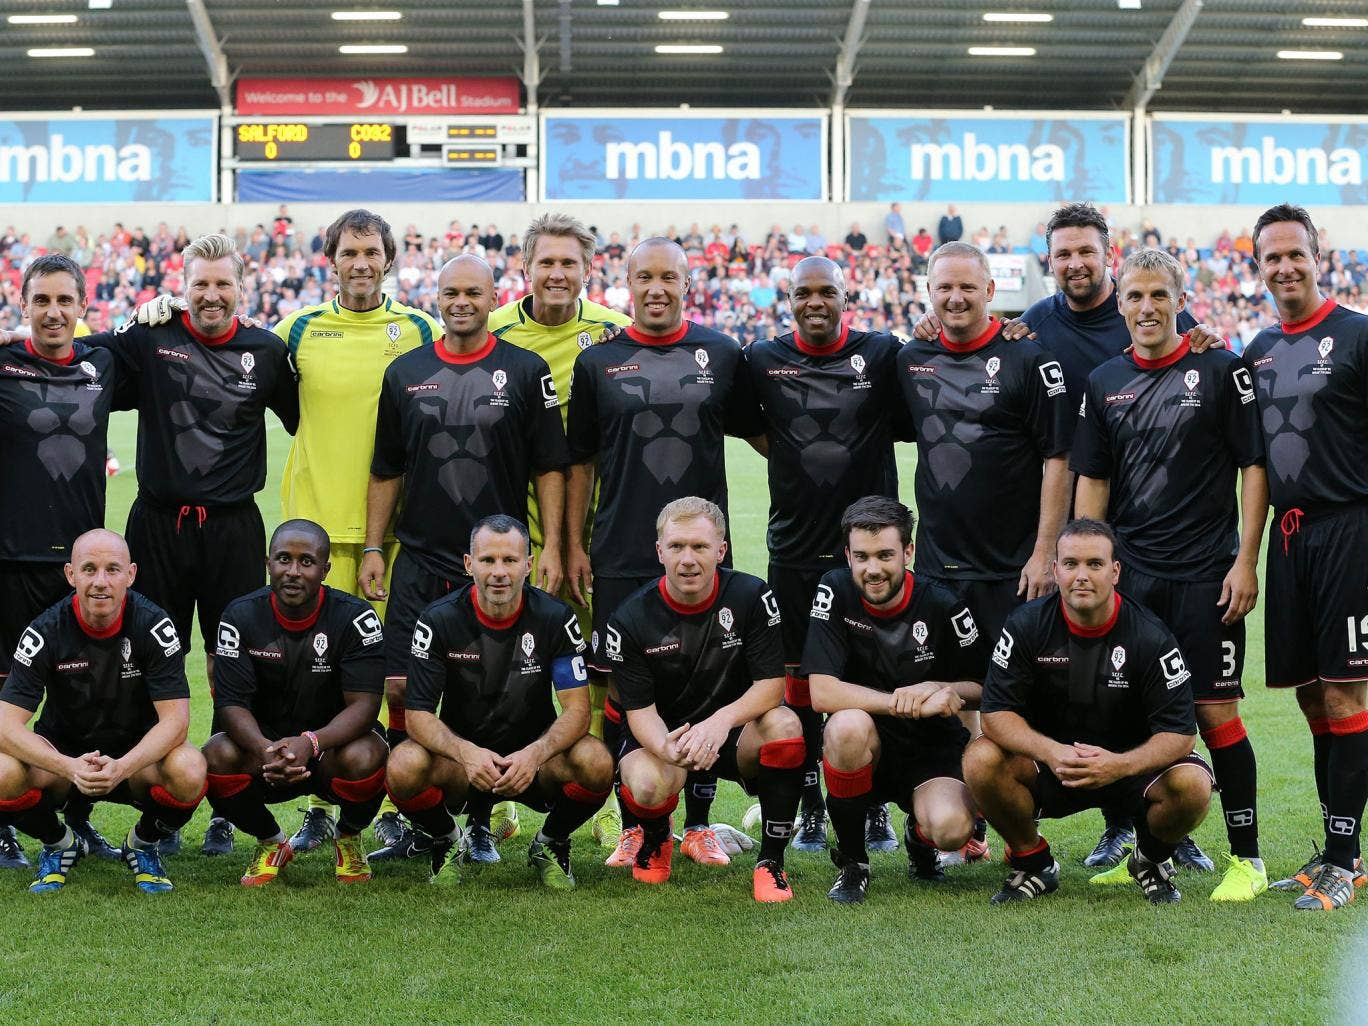 The Class of 92 - including Paul Scholes, Ryan Giggs, Nicky Butt and the Nevilles - played a friendly against non-league side Salford City FC